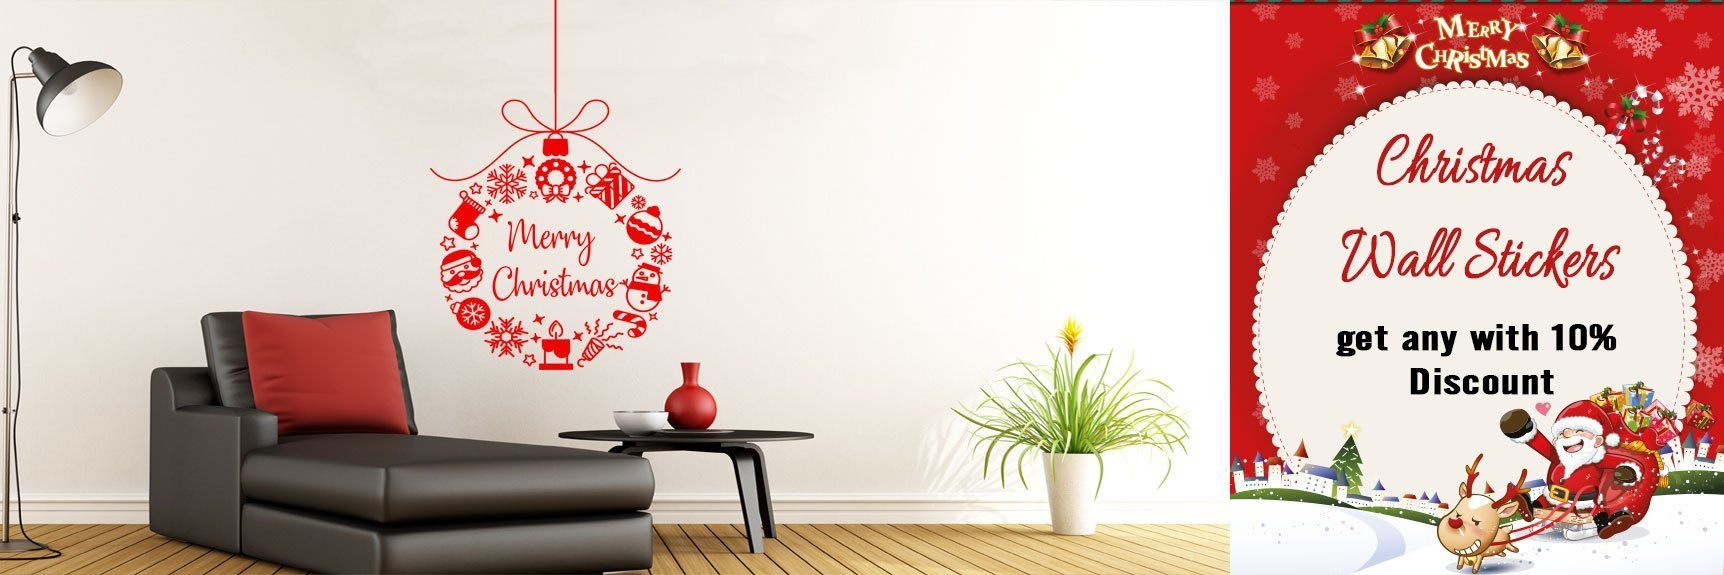 Islamic Wall Art Stickers and Mug